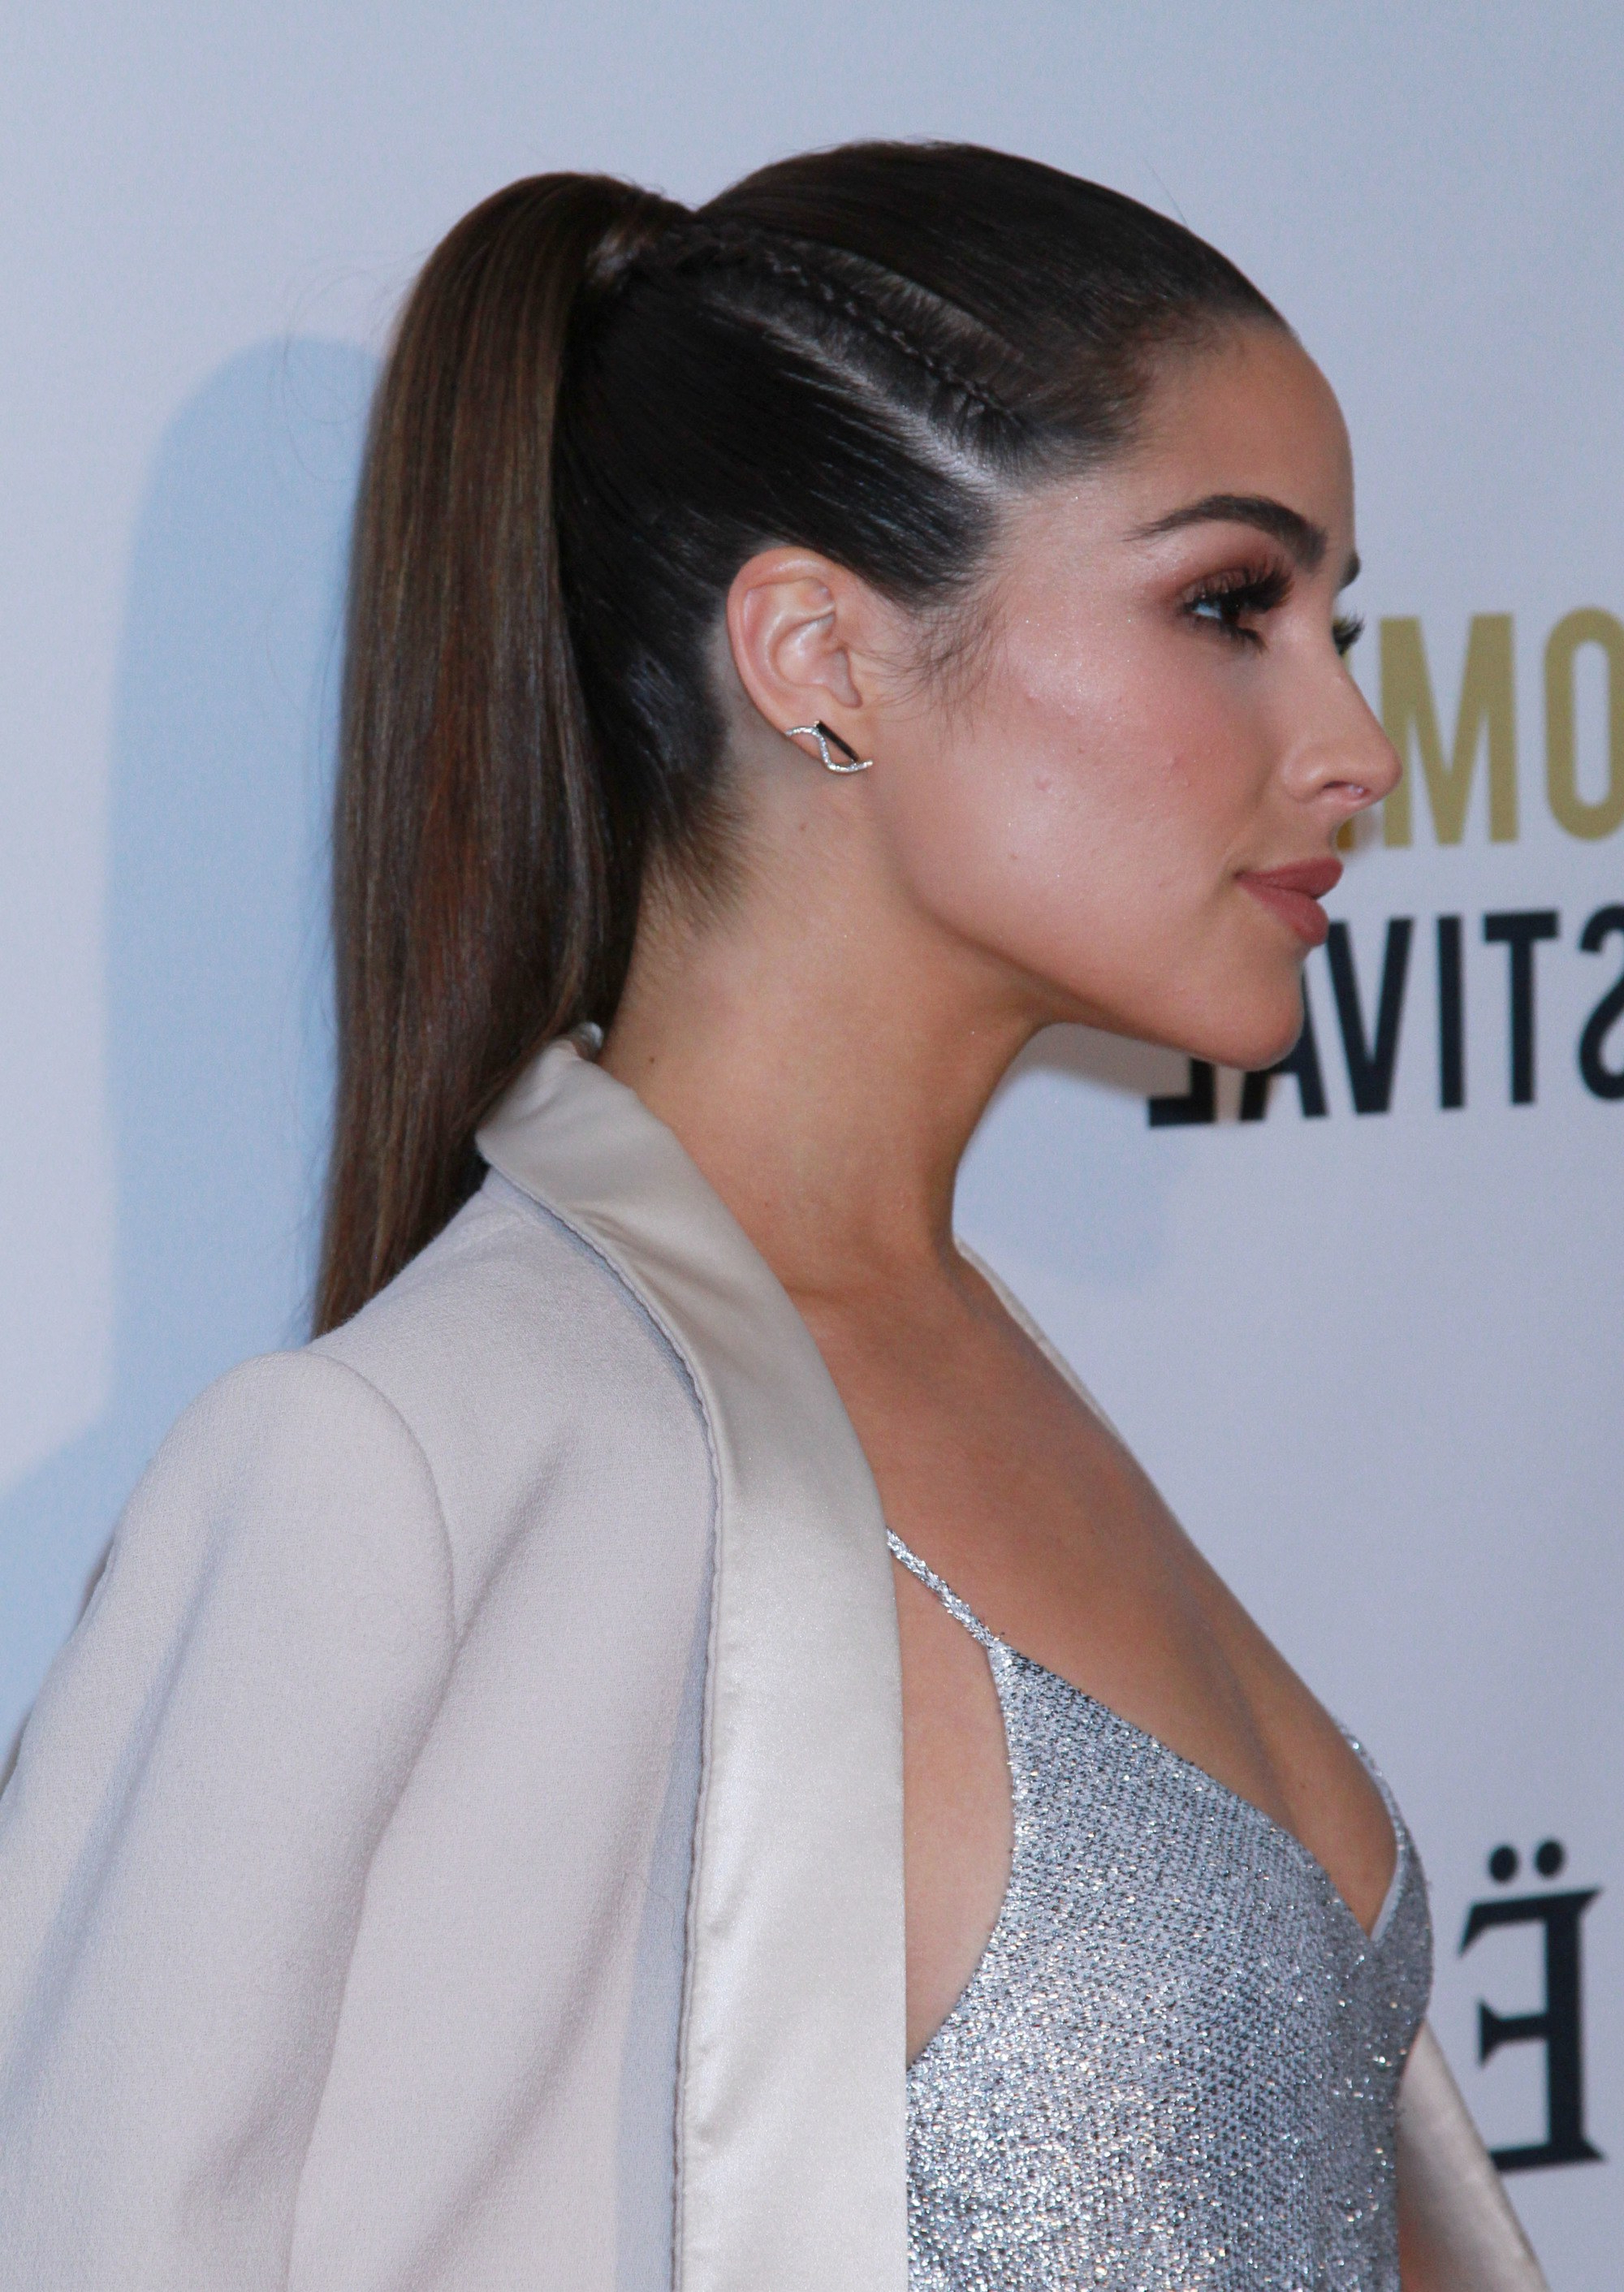 18 Side Braid Hairstyles To Inspire Your Next Look (2019 Update) With Widely Used High Ponytail Braided Hairstyles (Gallery 18 of 20)